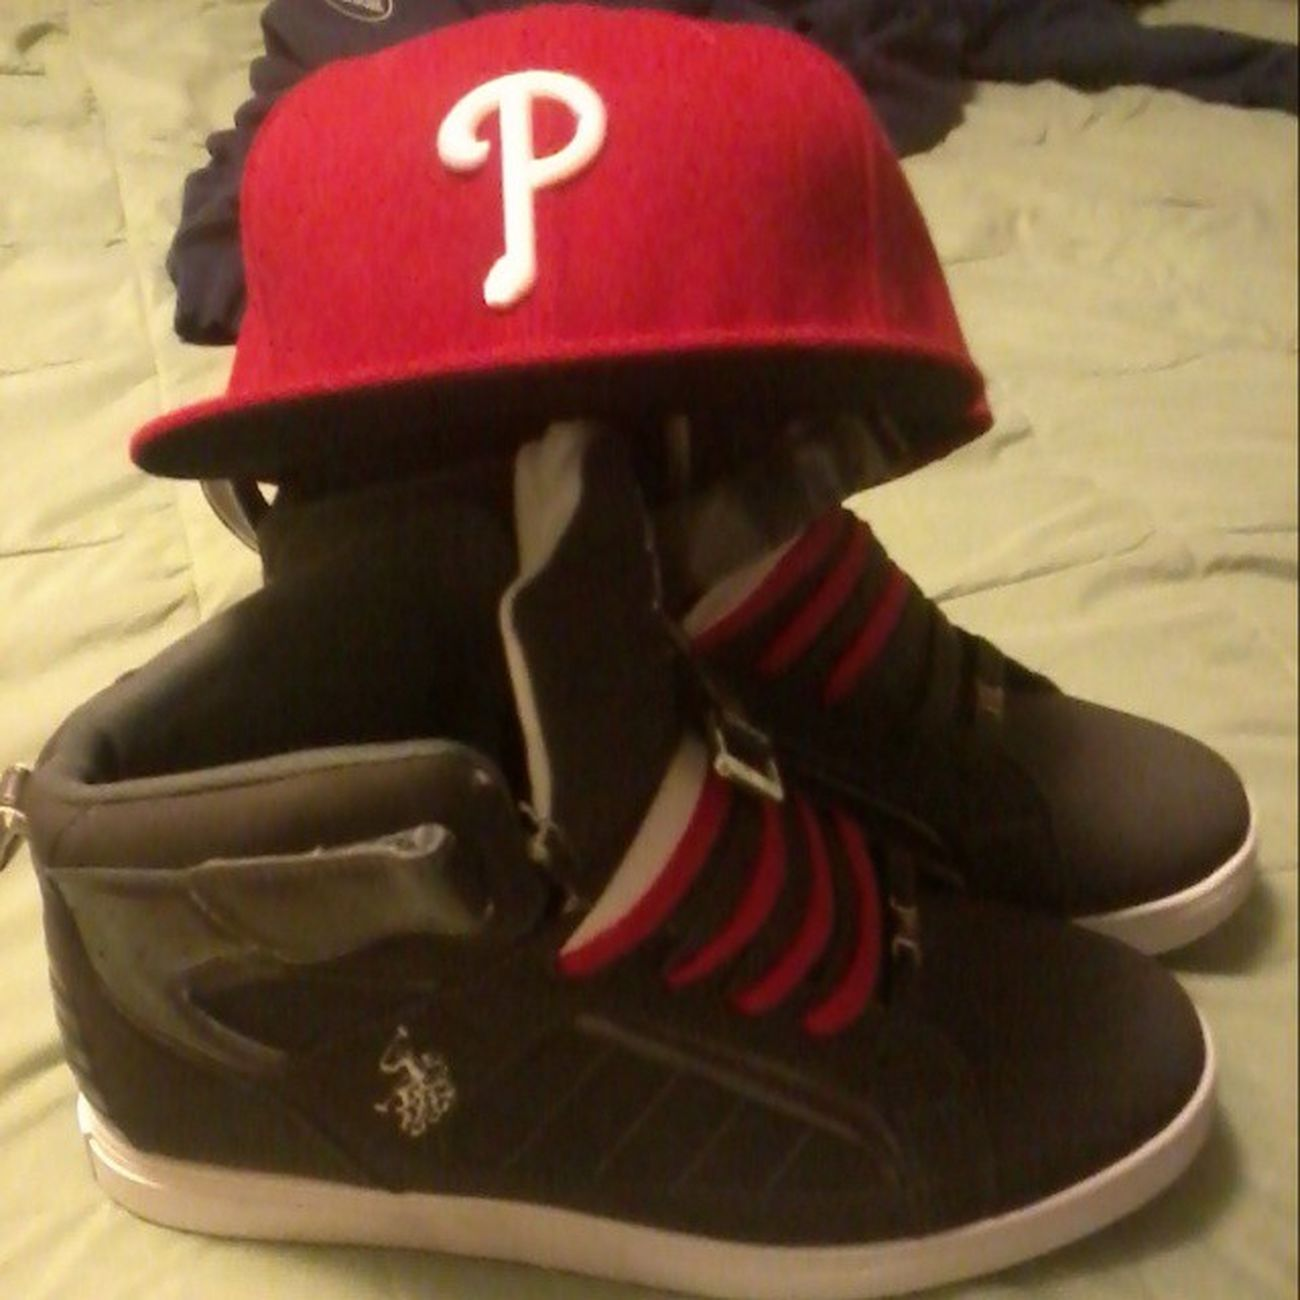 Treat yo self... Newshoes Shoes Polo Ralplauren RedBottoms  Newhat Hat Fitted Phillies Red Treatyoself Ballin